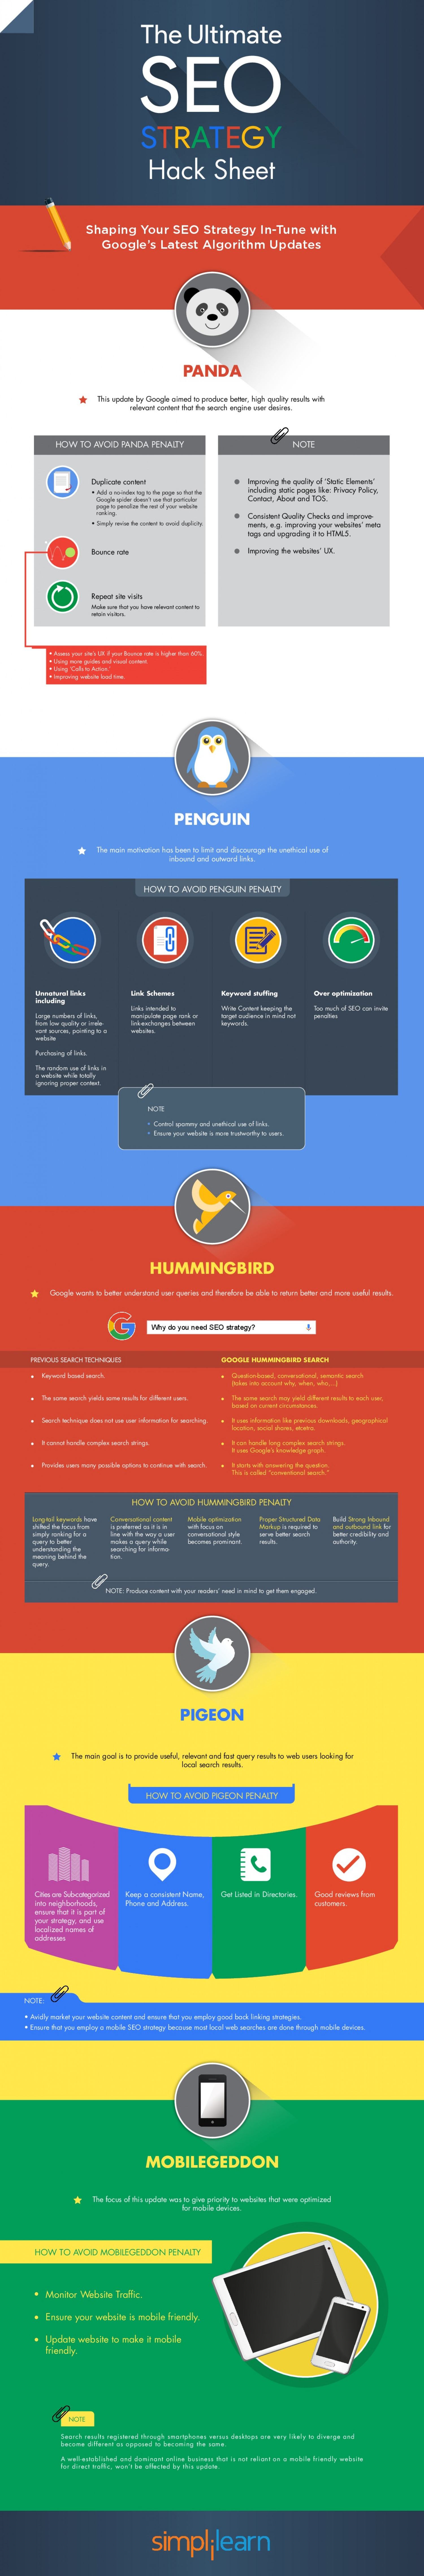 The Ultimate SEO Strategy Hacksheet Infographic